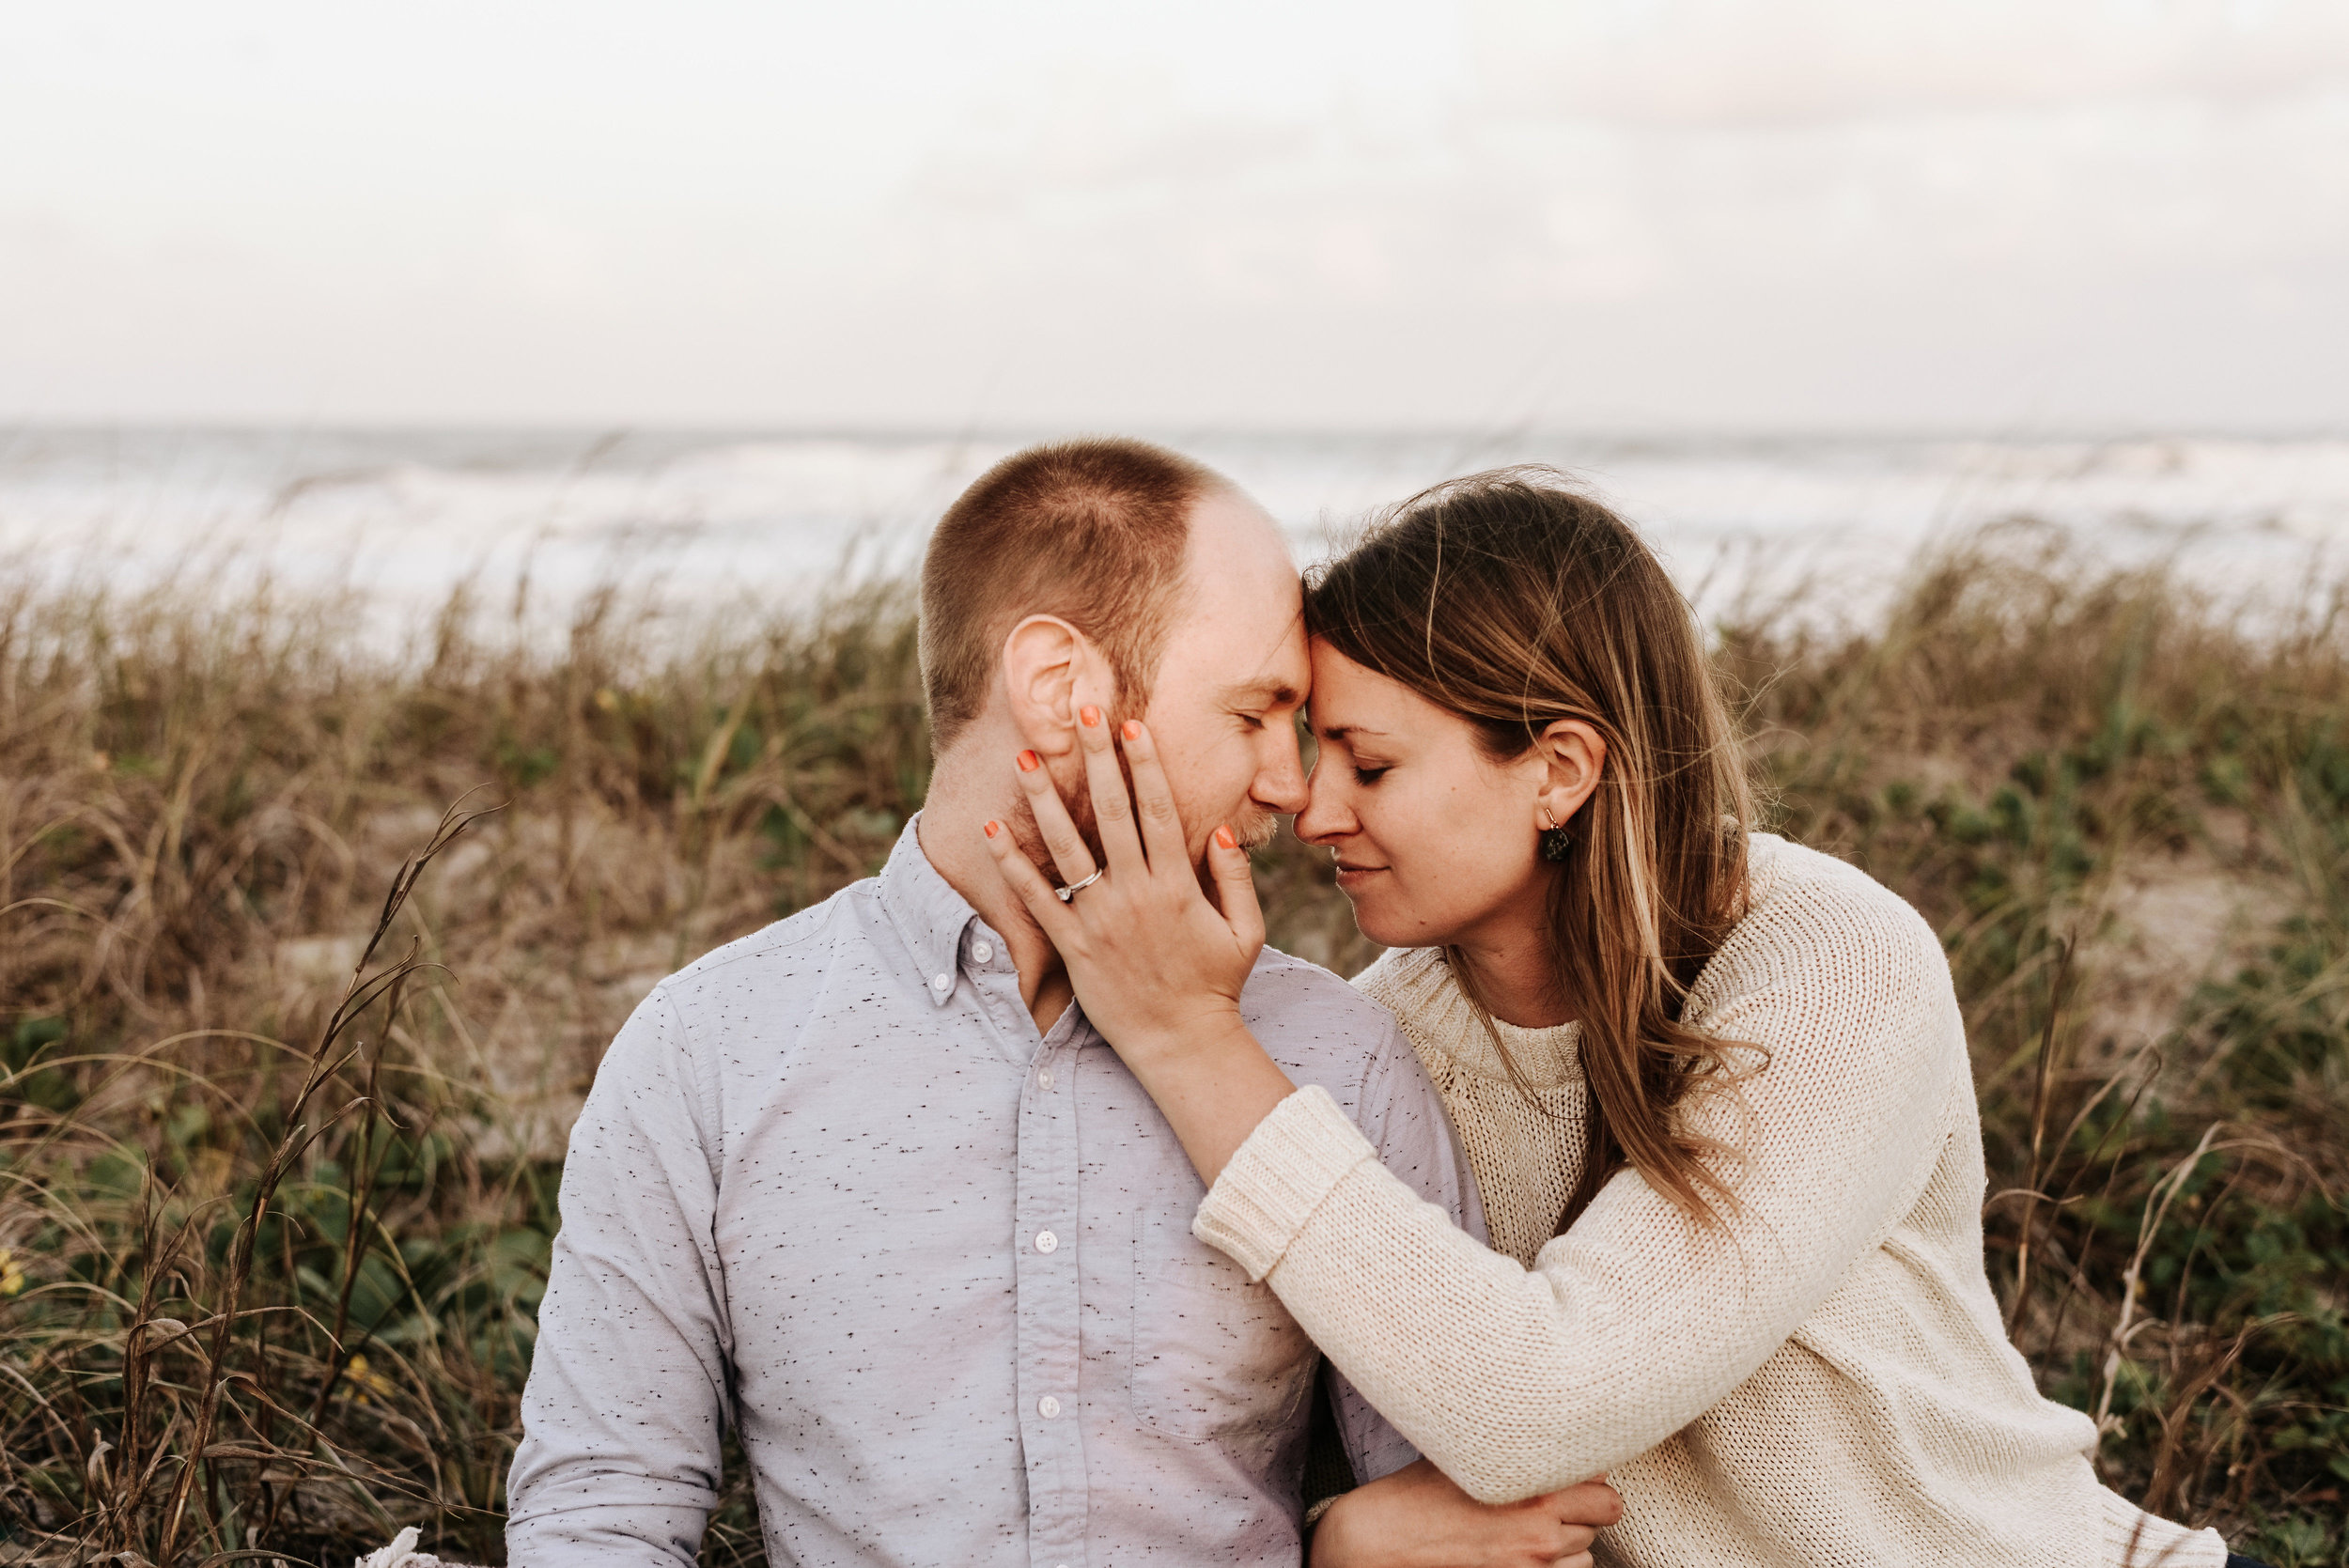 Courtney_Luke_Wedding_Engagement_Session_Cocoa_Beach_Florida_Photography_by_V_4829.jpg